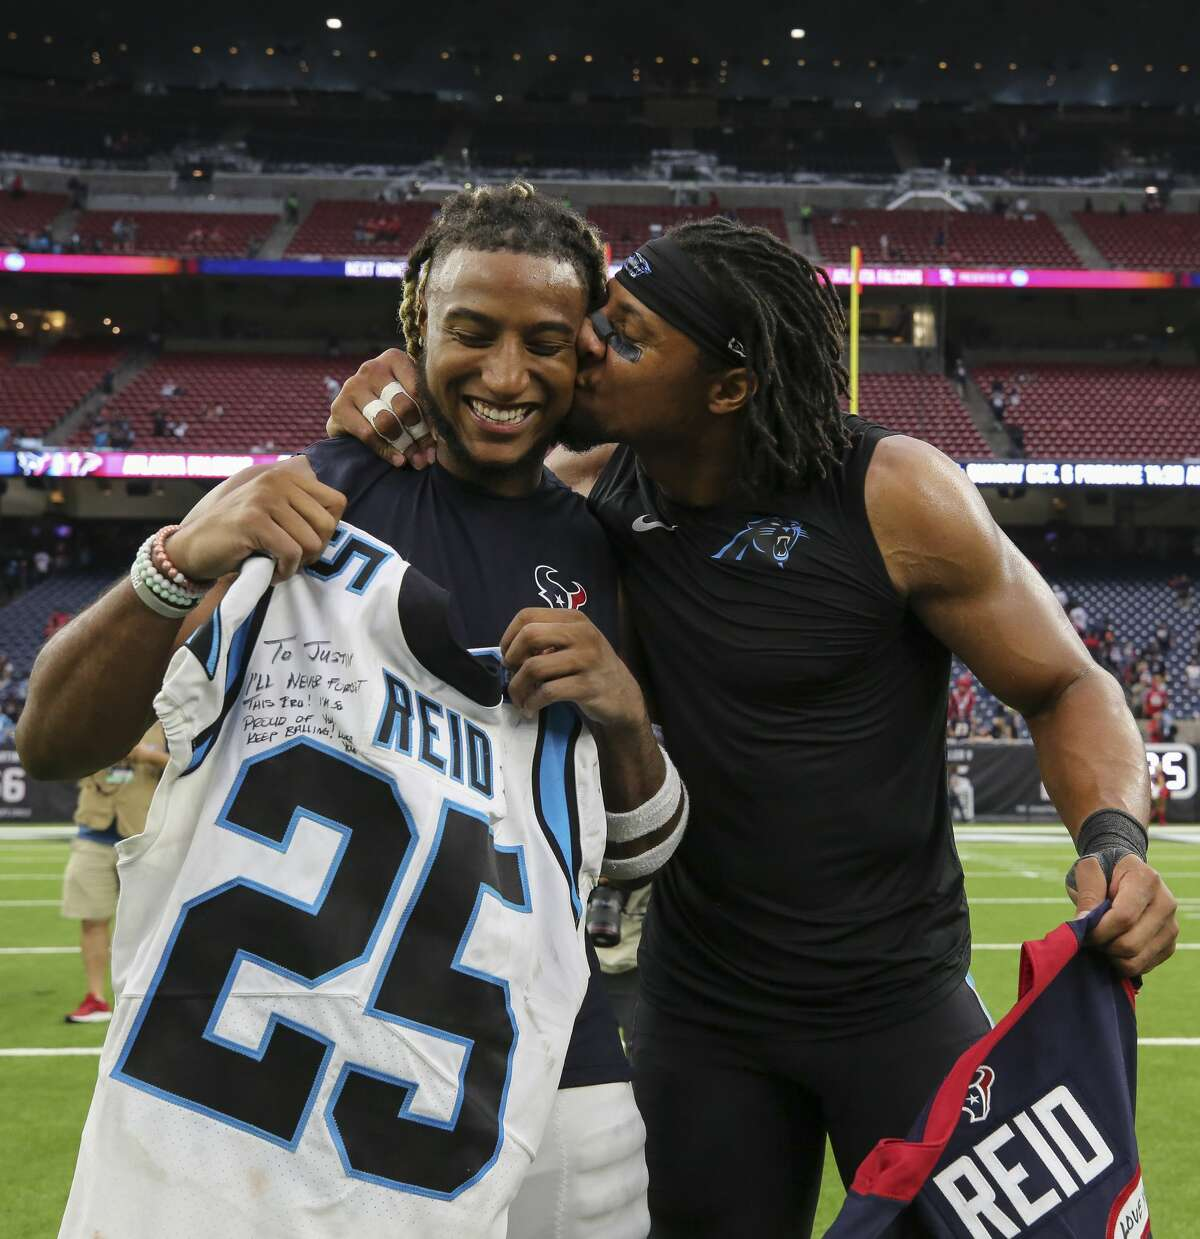 Carolina Panthers strong safety Eric Reid (25), right, gives a kiss to his brother Houston Texans strong safety Justin Reid (20) after exchanging jerseys after an NFL game at NRG Stadium Sunday, Sept. 29, 2019, in Houston. The Panthers won 16-10.